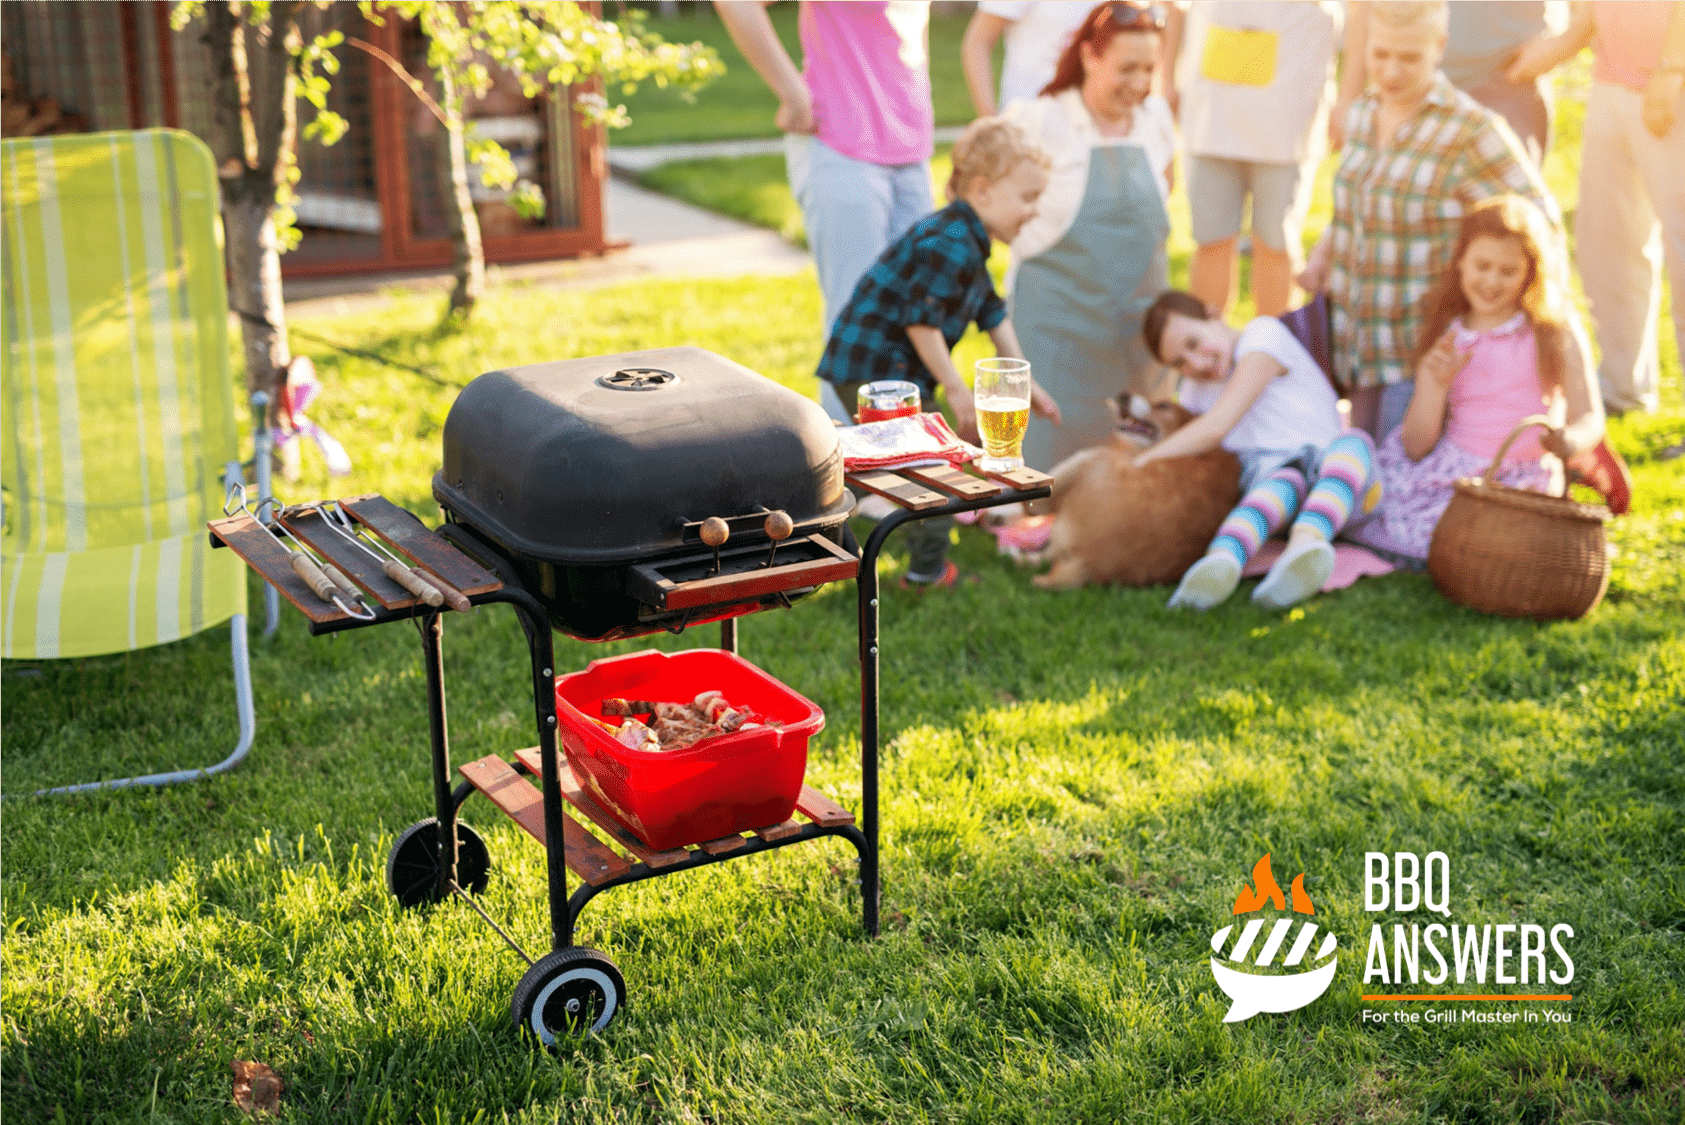 Portable Grill | Guide to Grill Types | BBQanswers